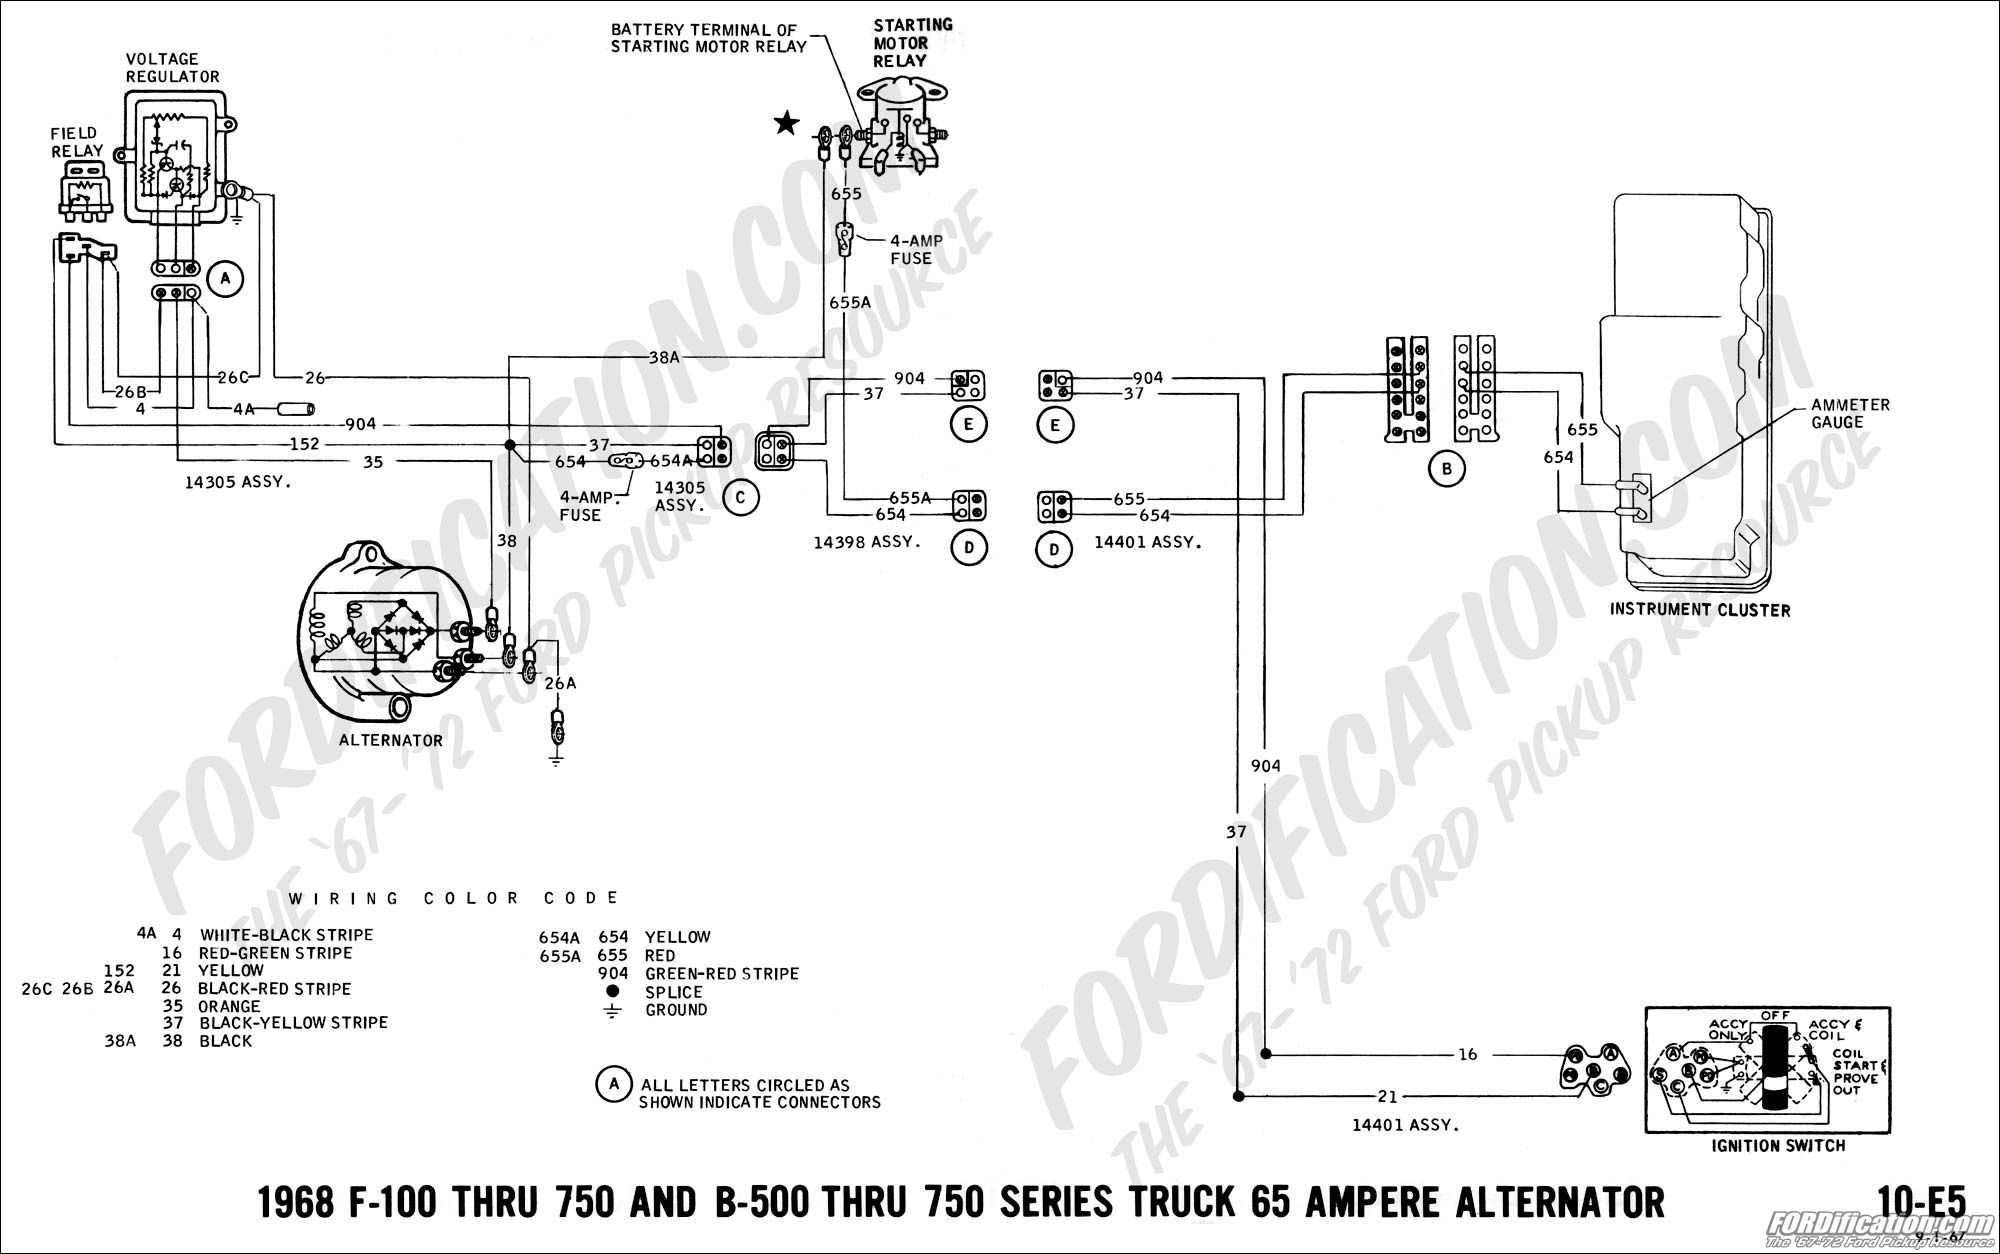 Wiring Diagram For 1971 Gmc Truck Libraries Ford Simple Schema